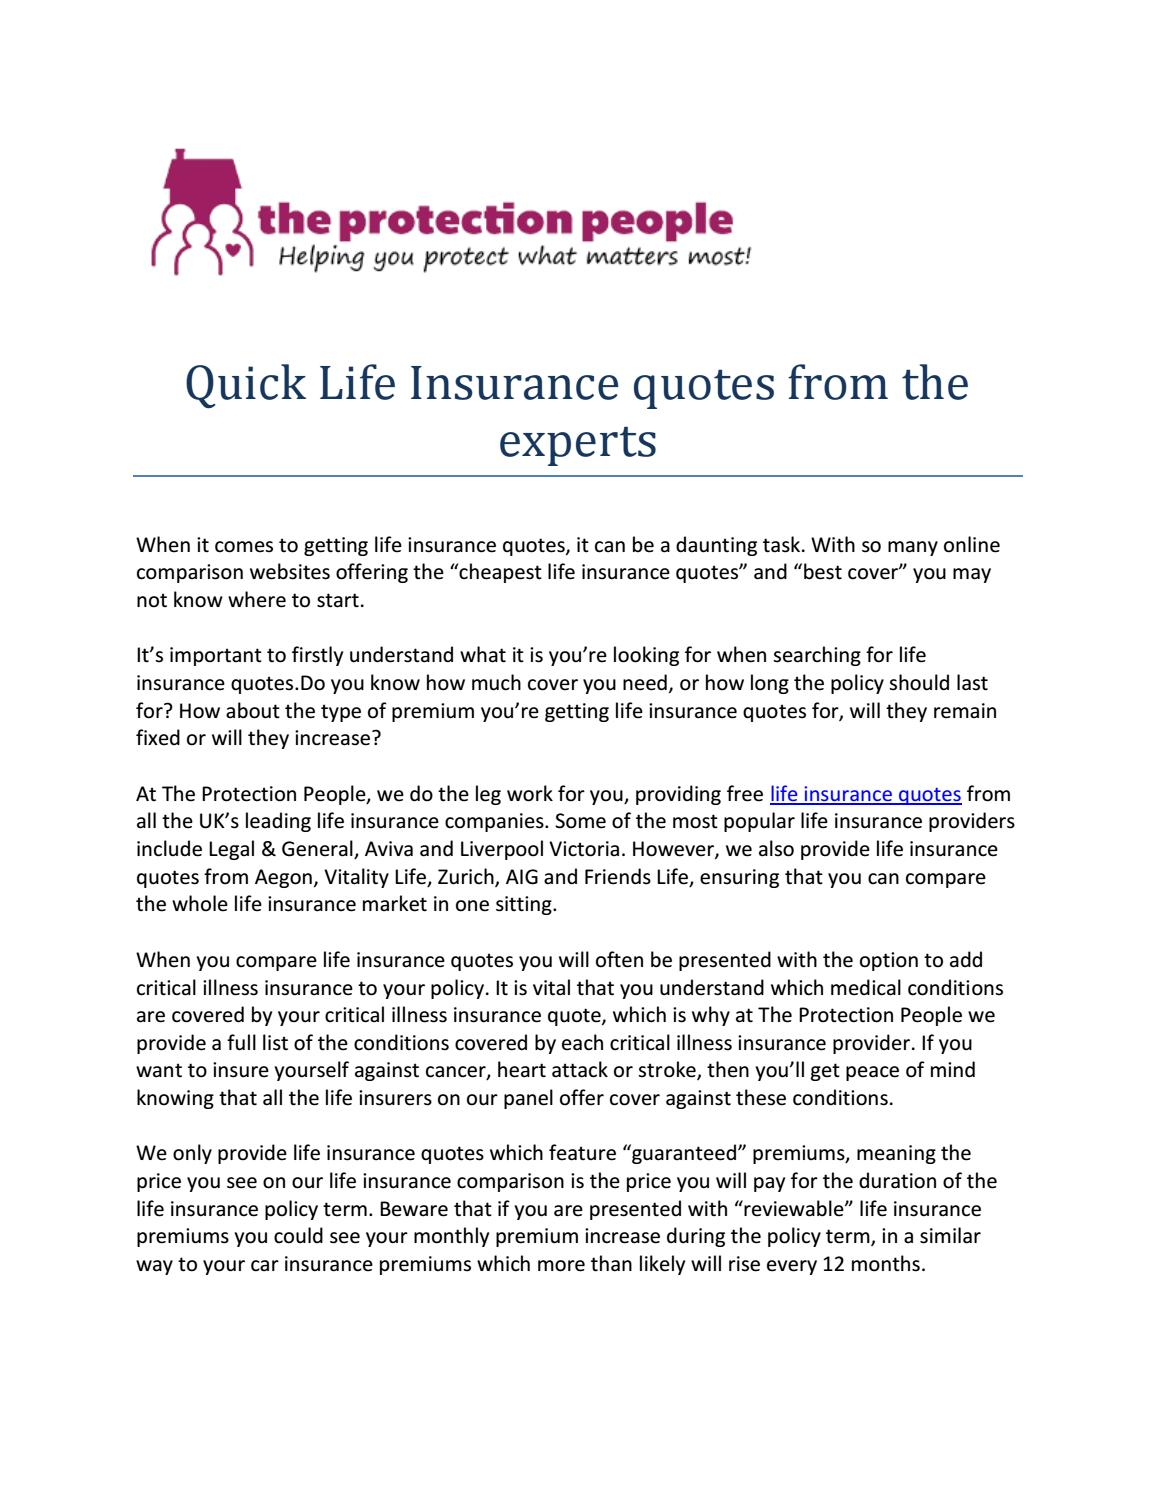 Quick Life Insurance Quote Simple The Protection People  Quick Life Insurance Quotes From The